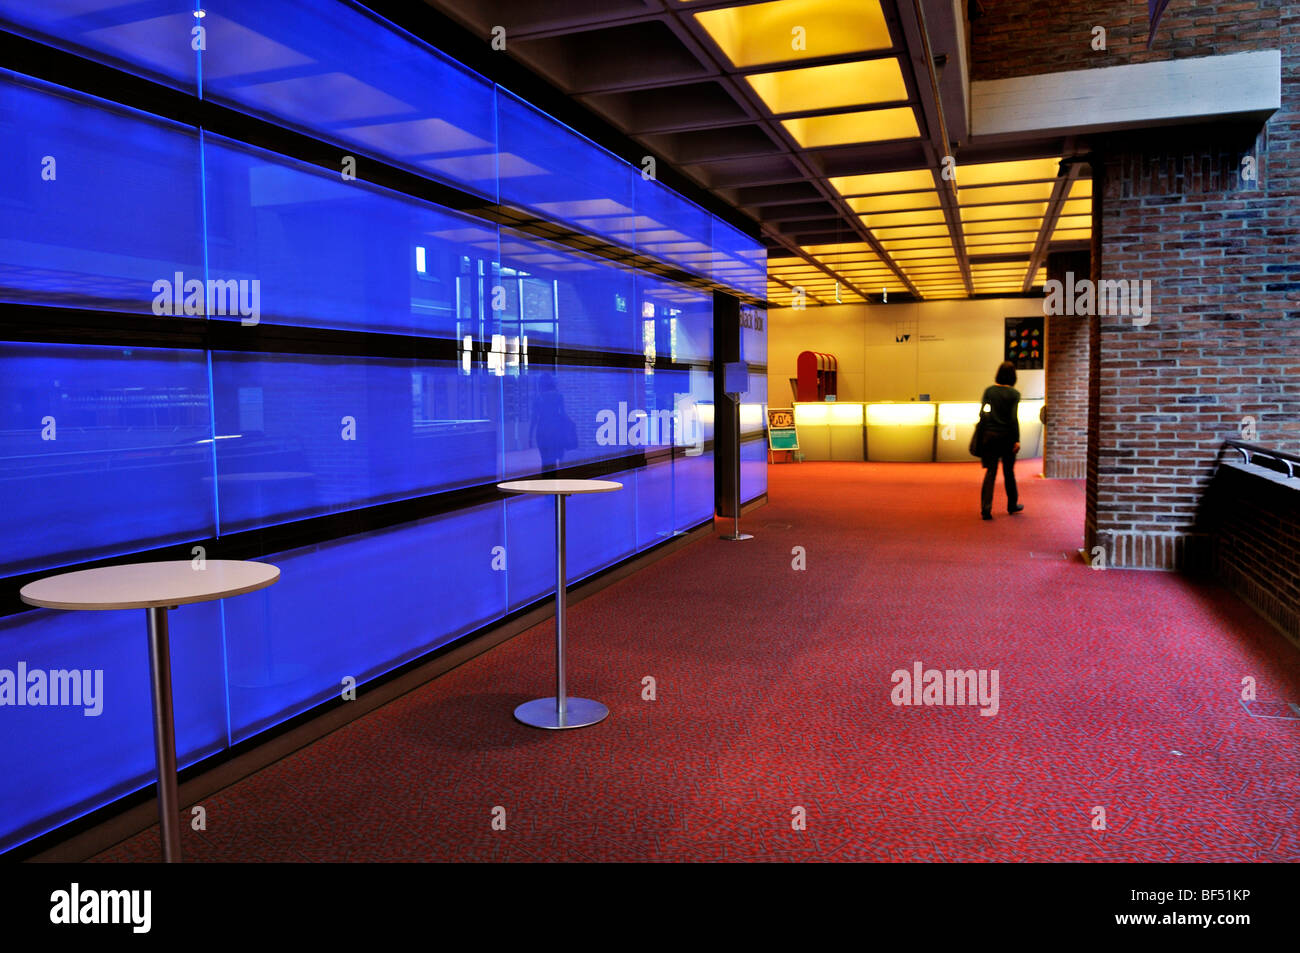 Foyer of the Black Box, Gasteig Cultural Centre, Munich, Bavaria, Germany, Europe - Stock Image